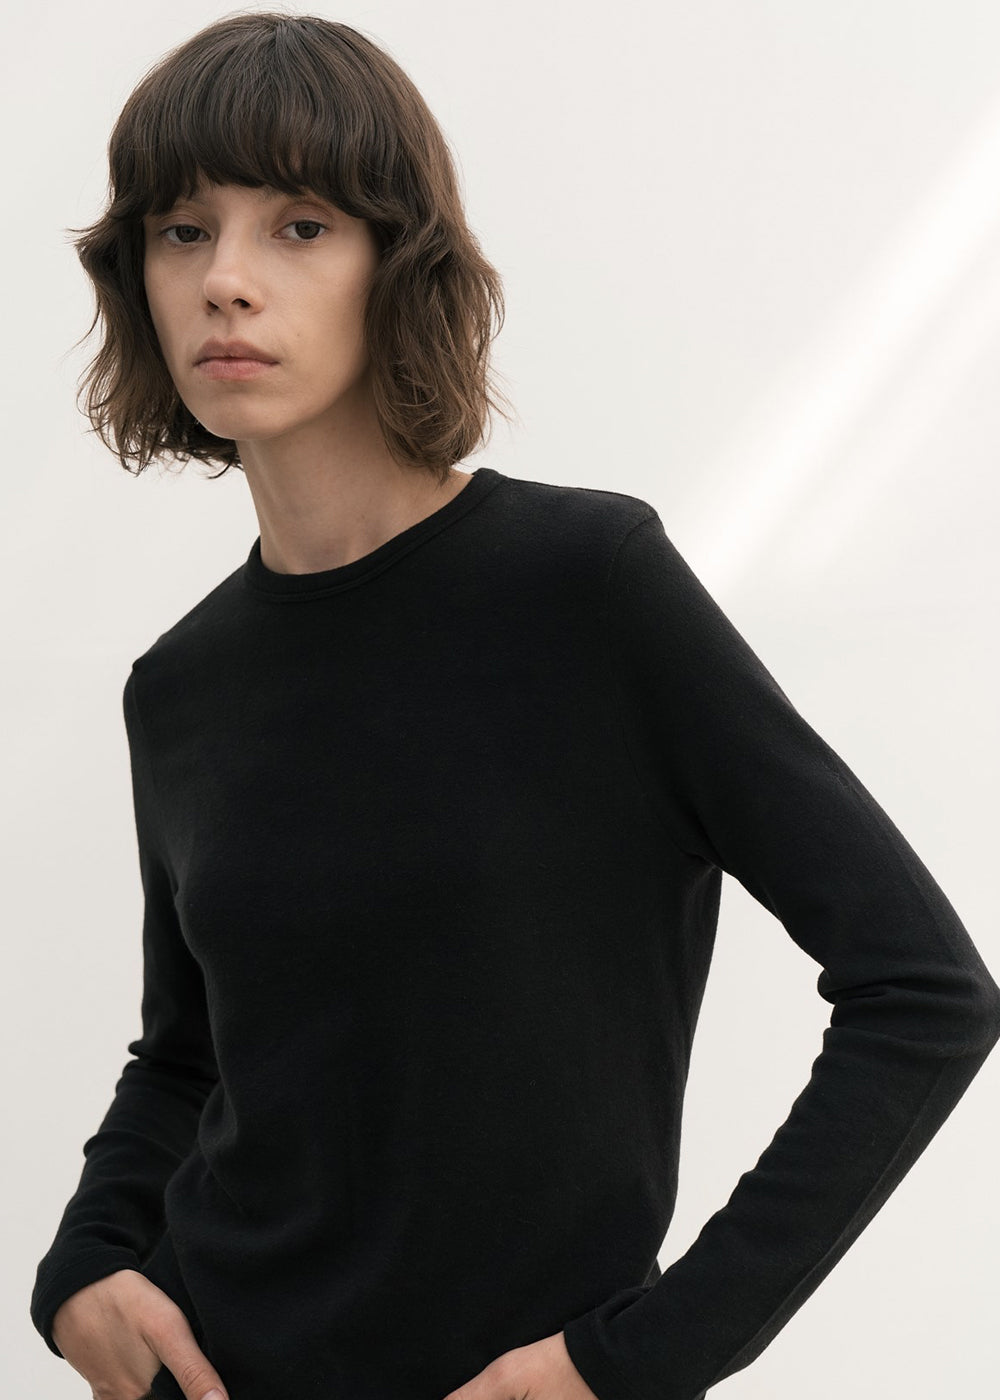 SLIM PEACH SPAN ROUND T SHIRT BLACK